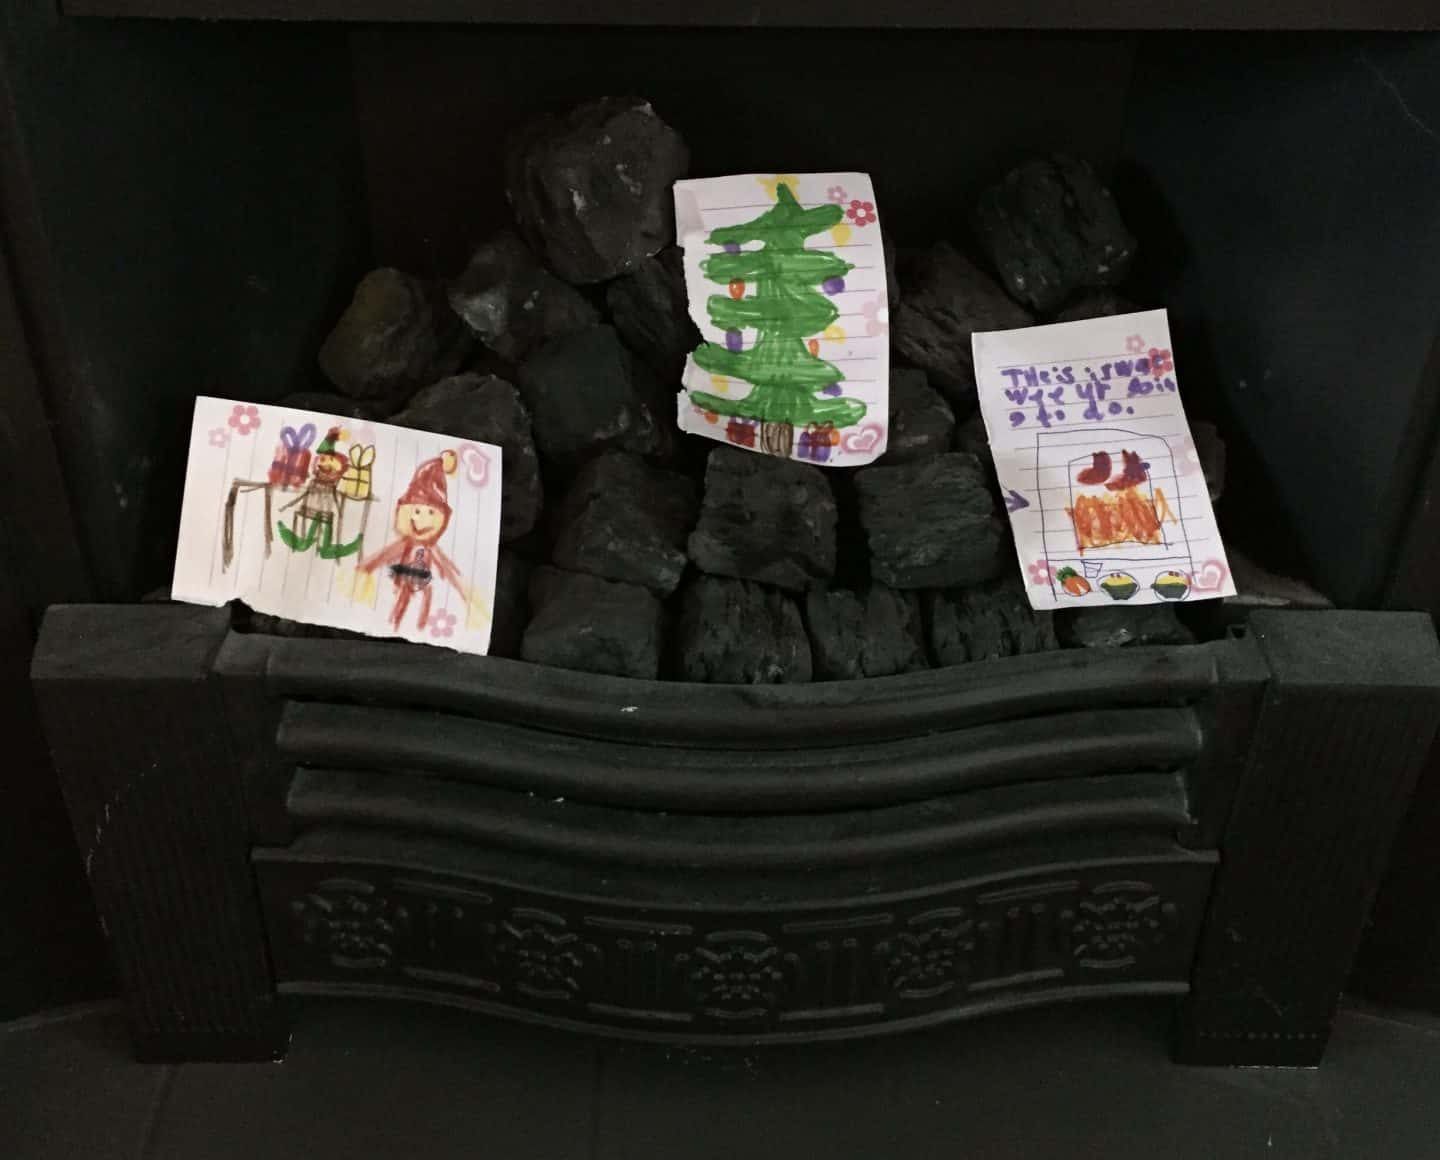 Christmas letters to Santa in the fireplace